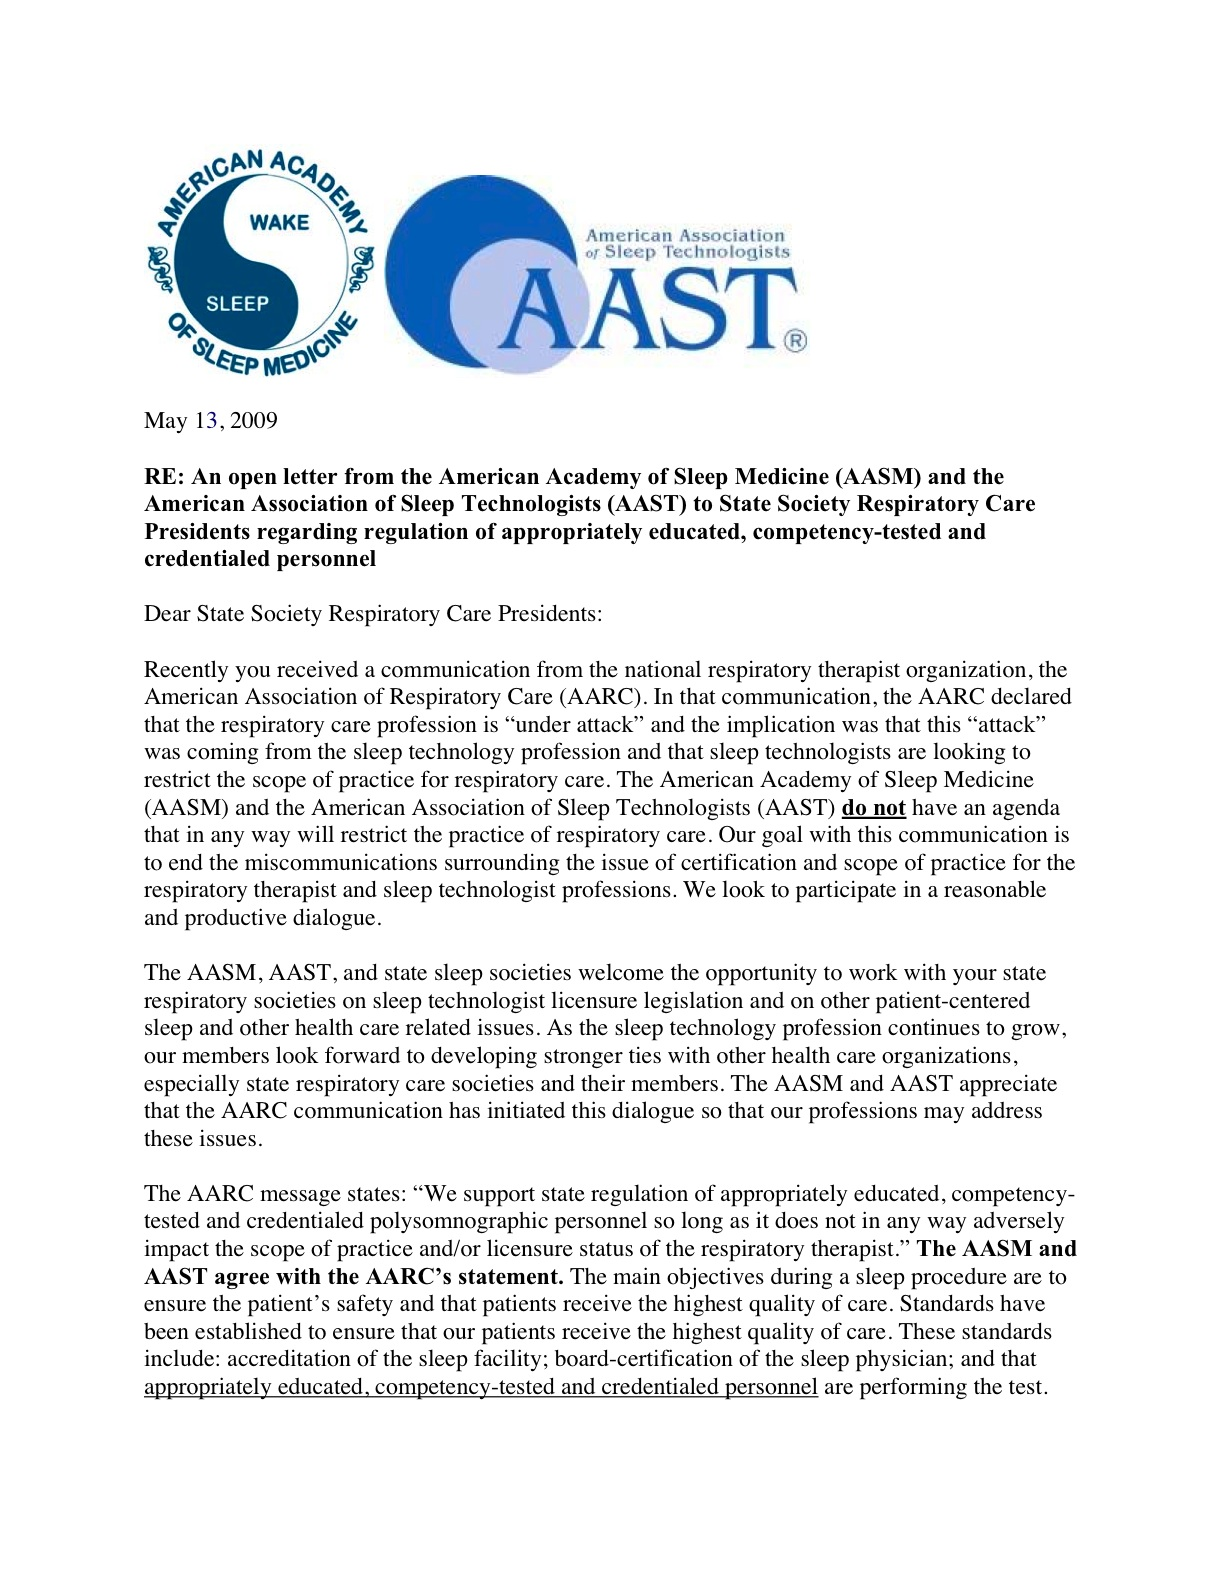 sending a letter to someone aasm and aast send open letter to state respiratory care 20866 | 103103768?profile=original